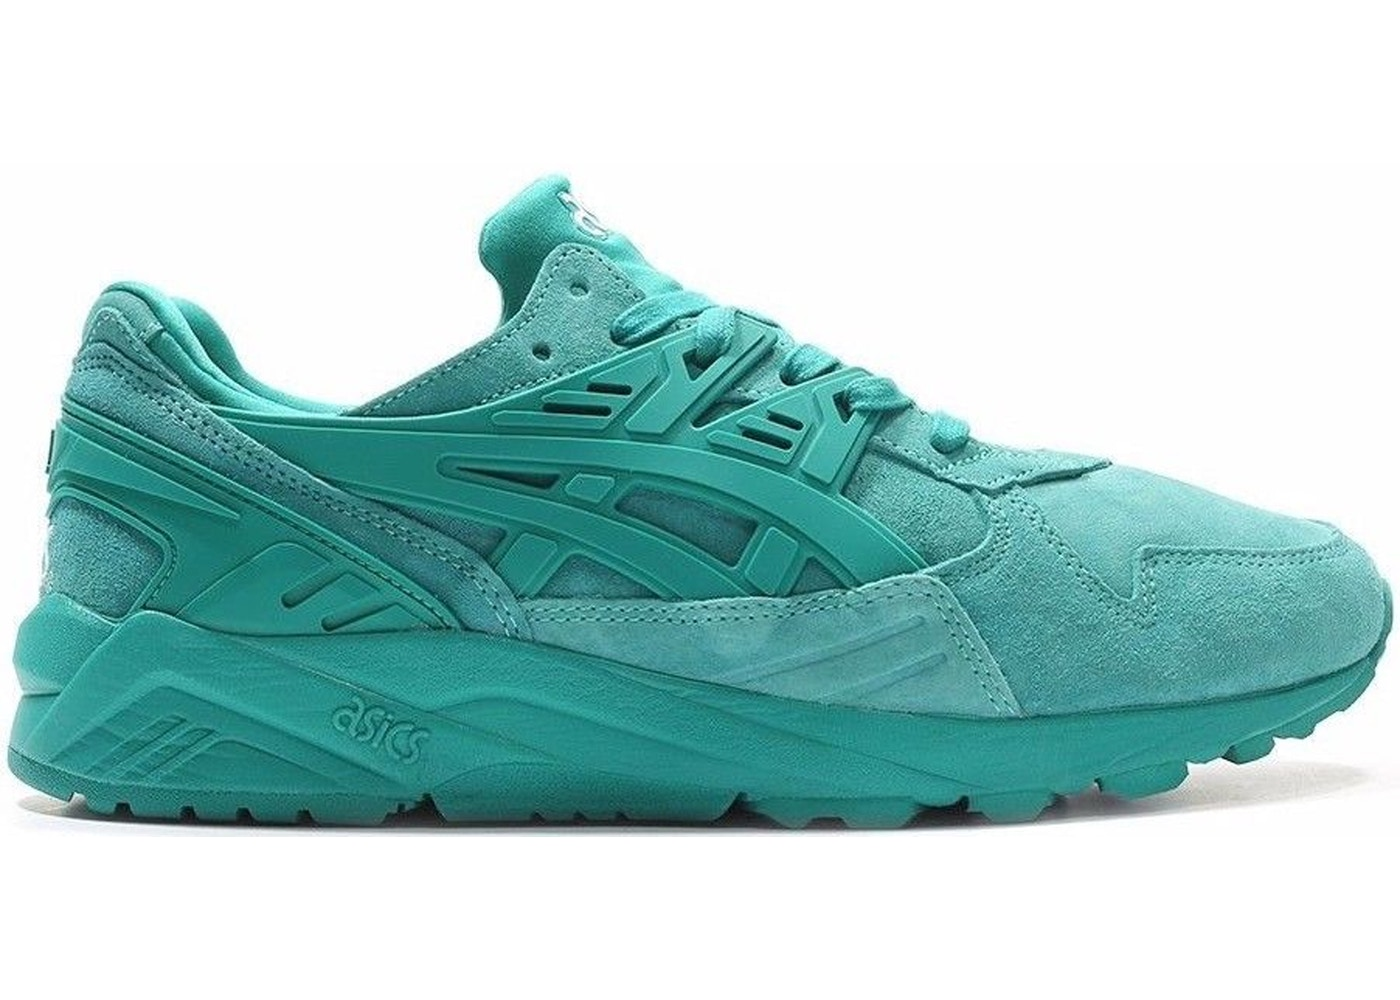 the best attitude 70993 0d7cc ASICS Gel-Kayano Trainer Ocean Pack Spectra Green